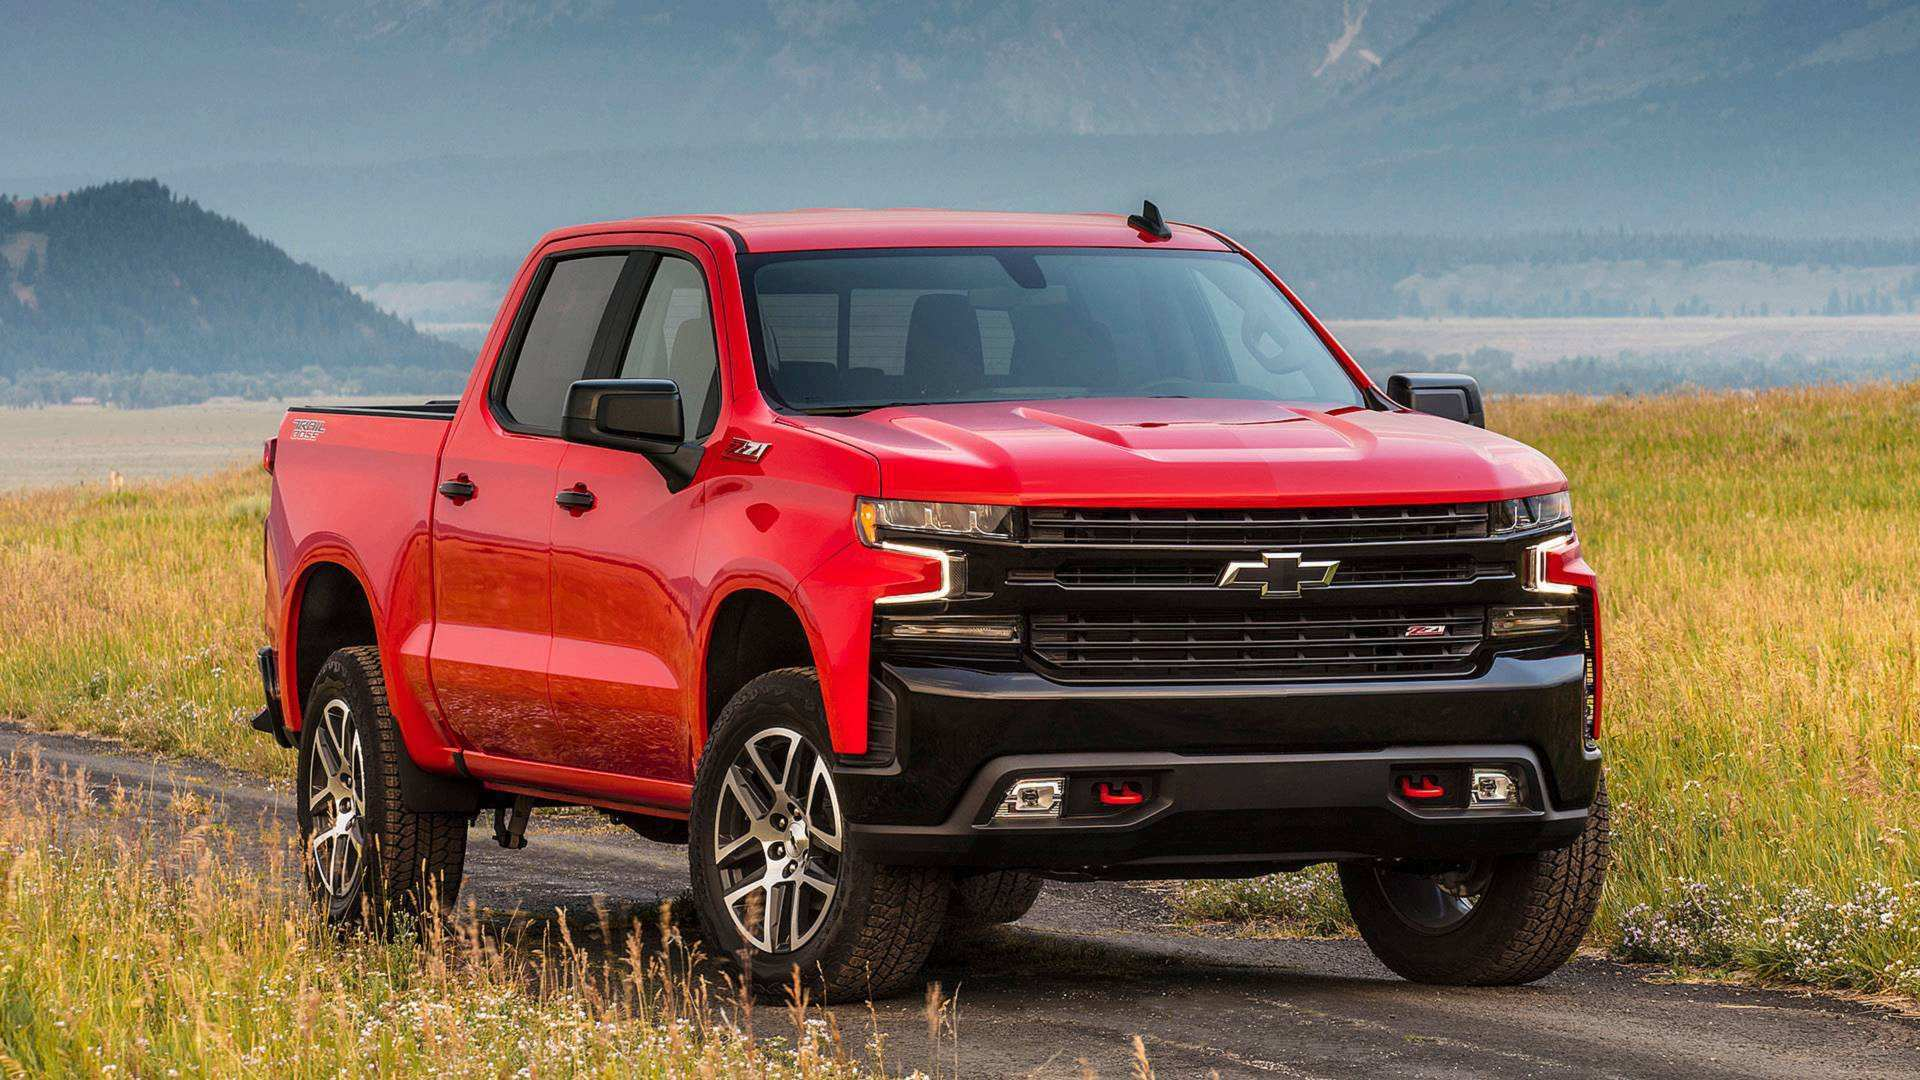 68 The New 2019 Chevrolet Silverado Work Truck Concept Redesign And Review Performance for New 2019 Chevrolet Silverado Work Truck Concept Redesign And Review